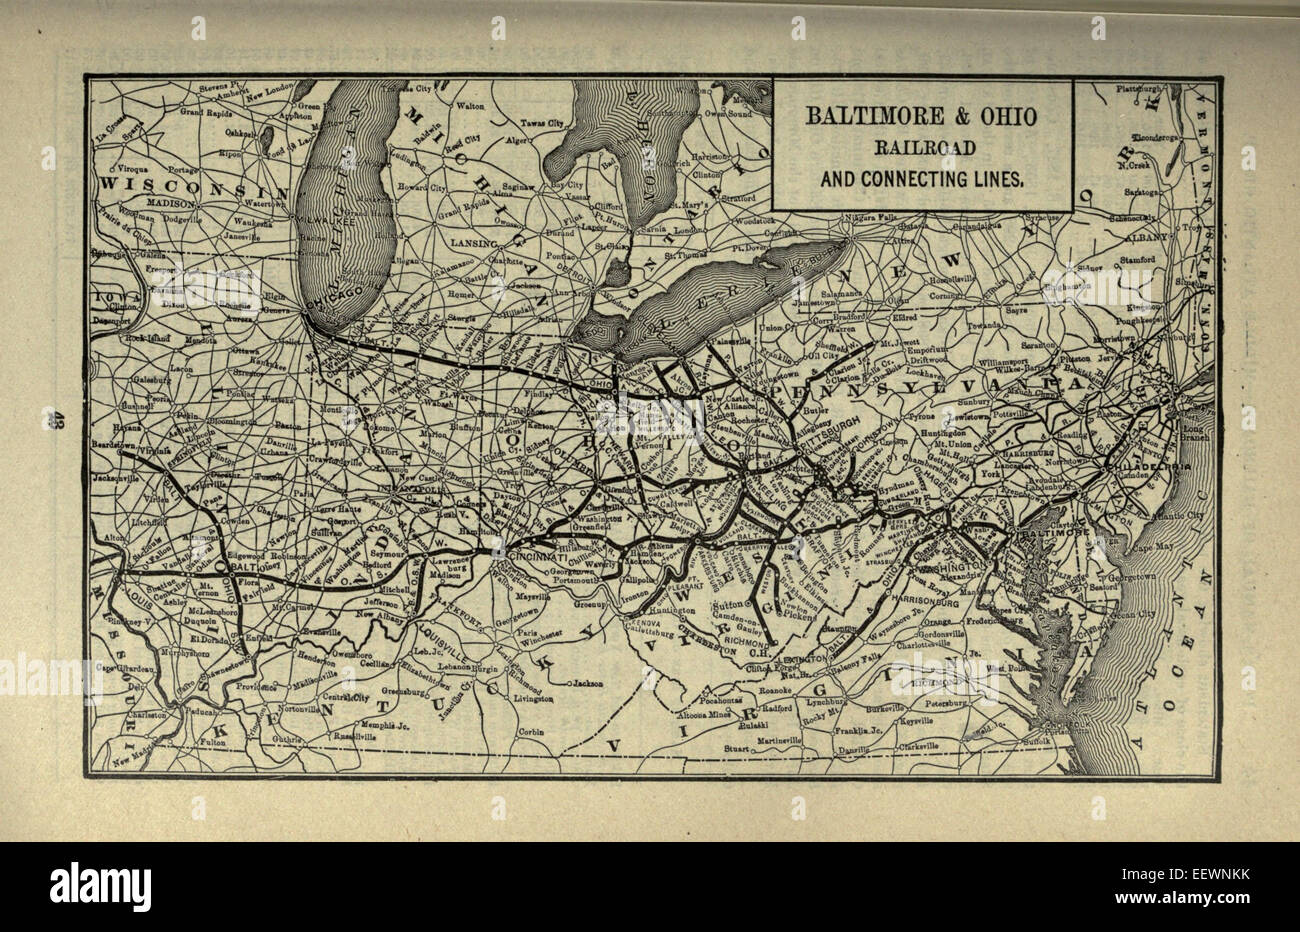 1901 Poor's Baltimore and Ohio Railroad - Stock Image